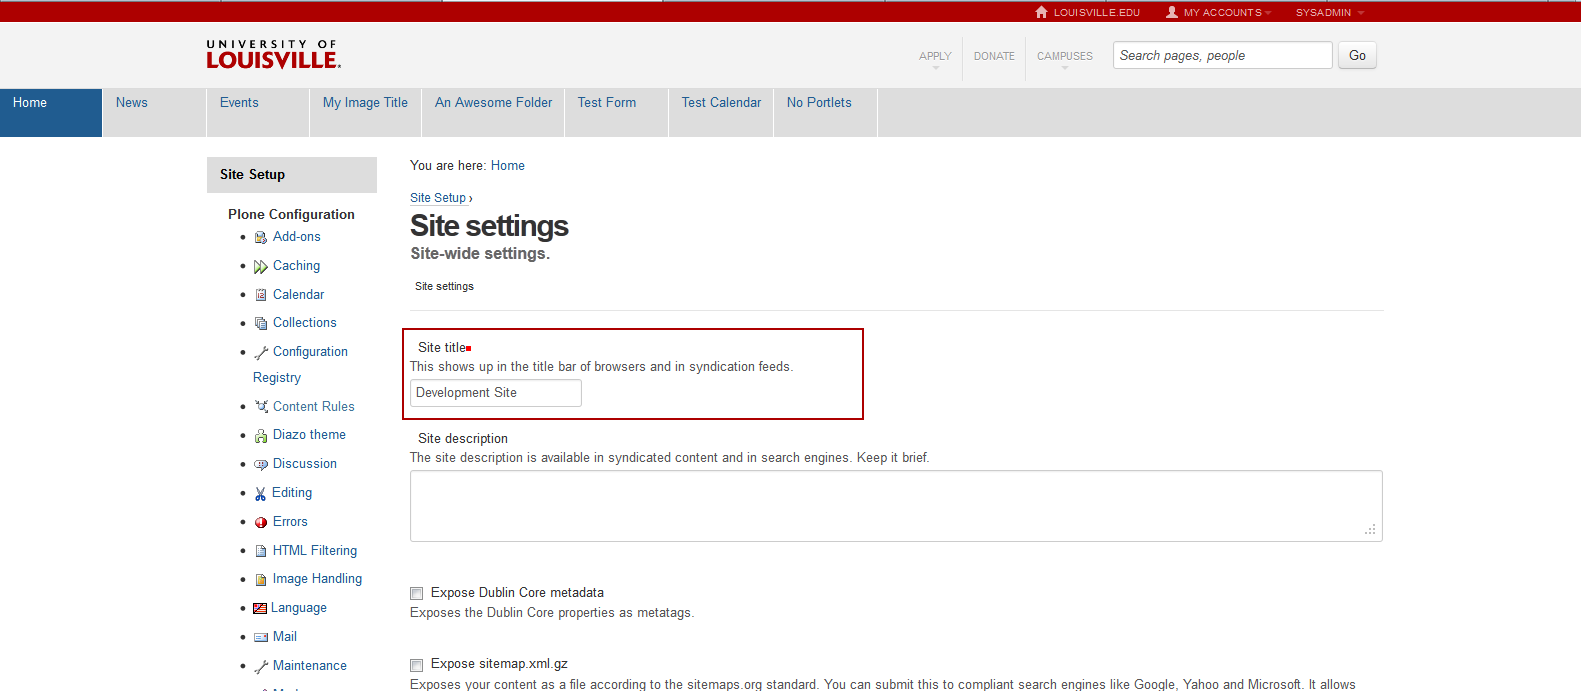 Where to set the site title in the control panel